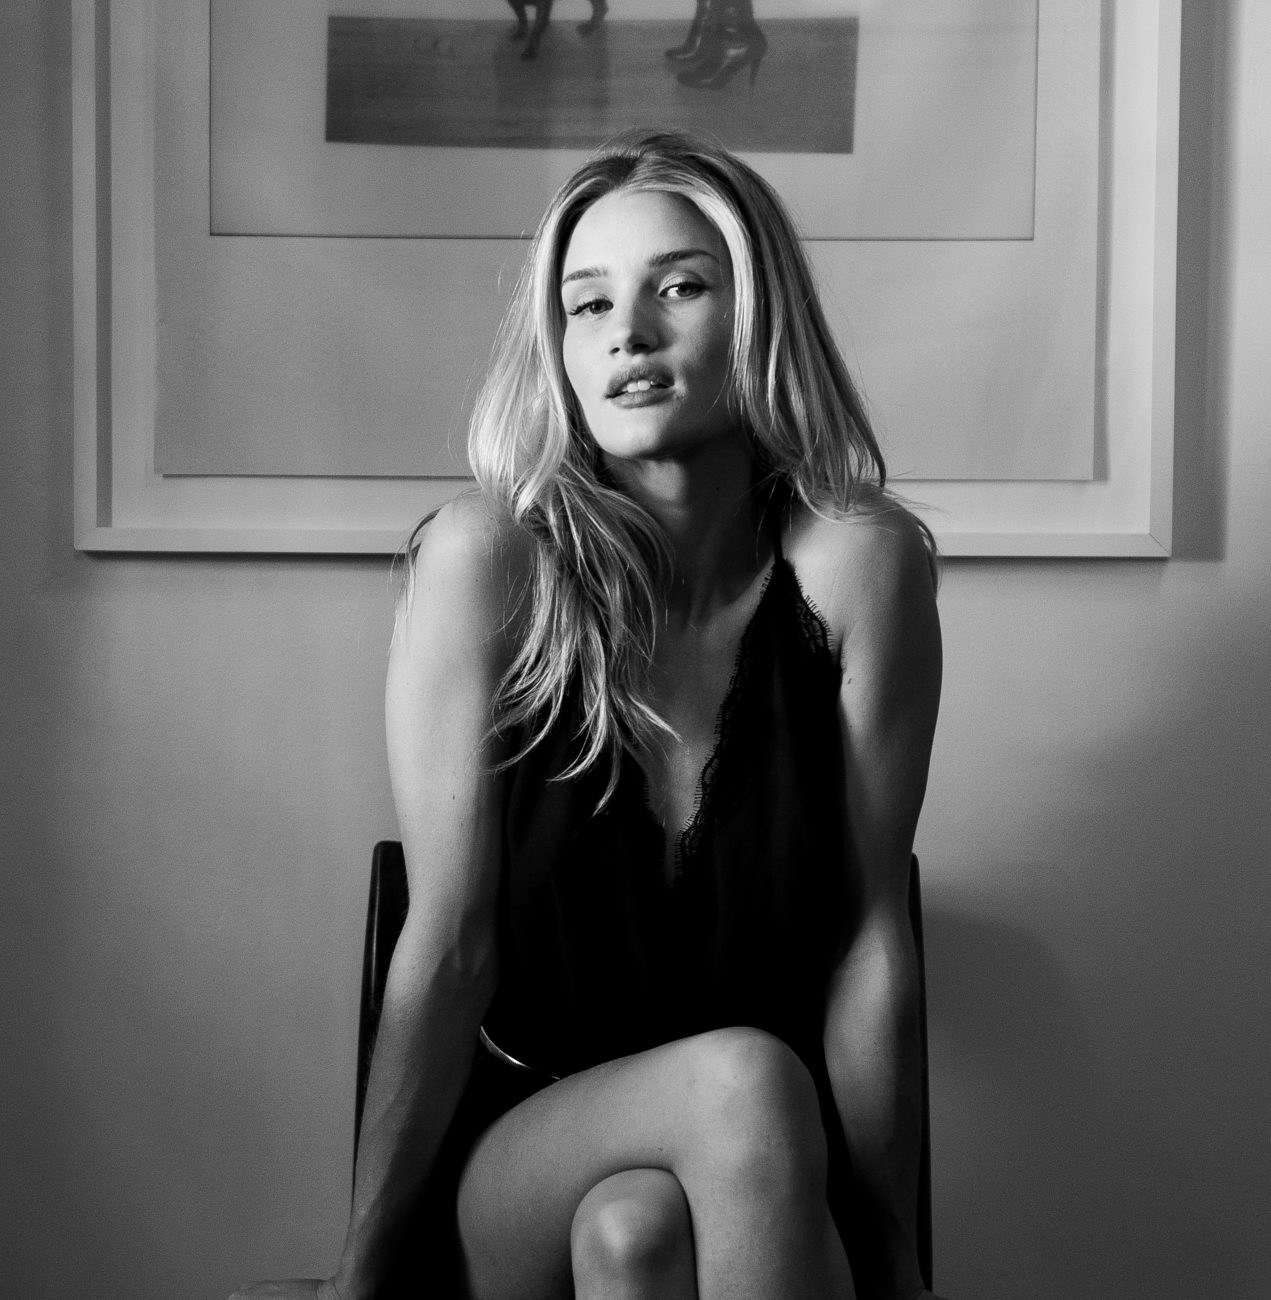 Rosie Huntington Whiteley The Coveteur 2014 Photoshoot 24 Gotceleb